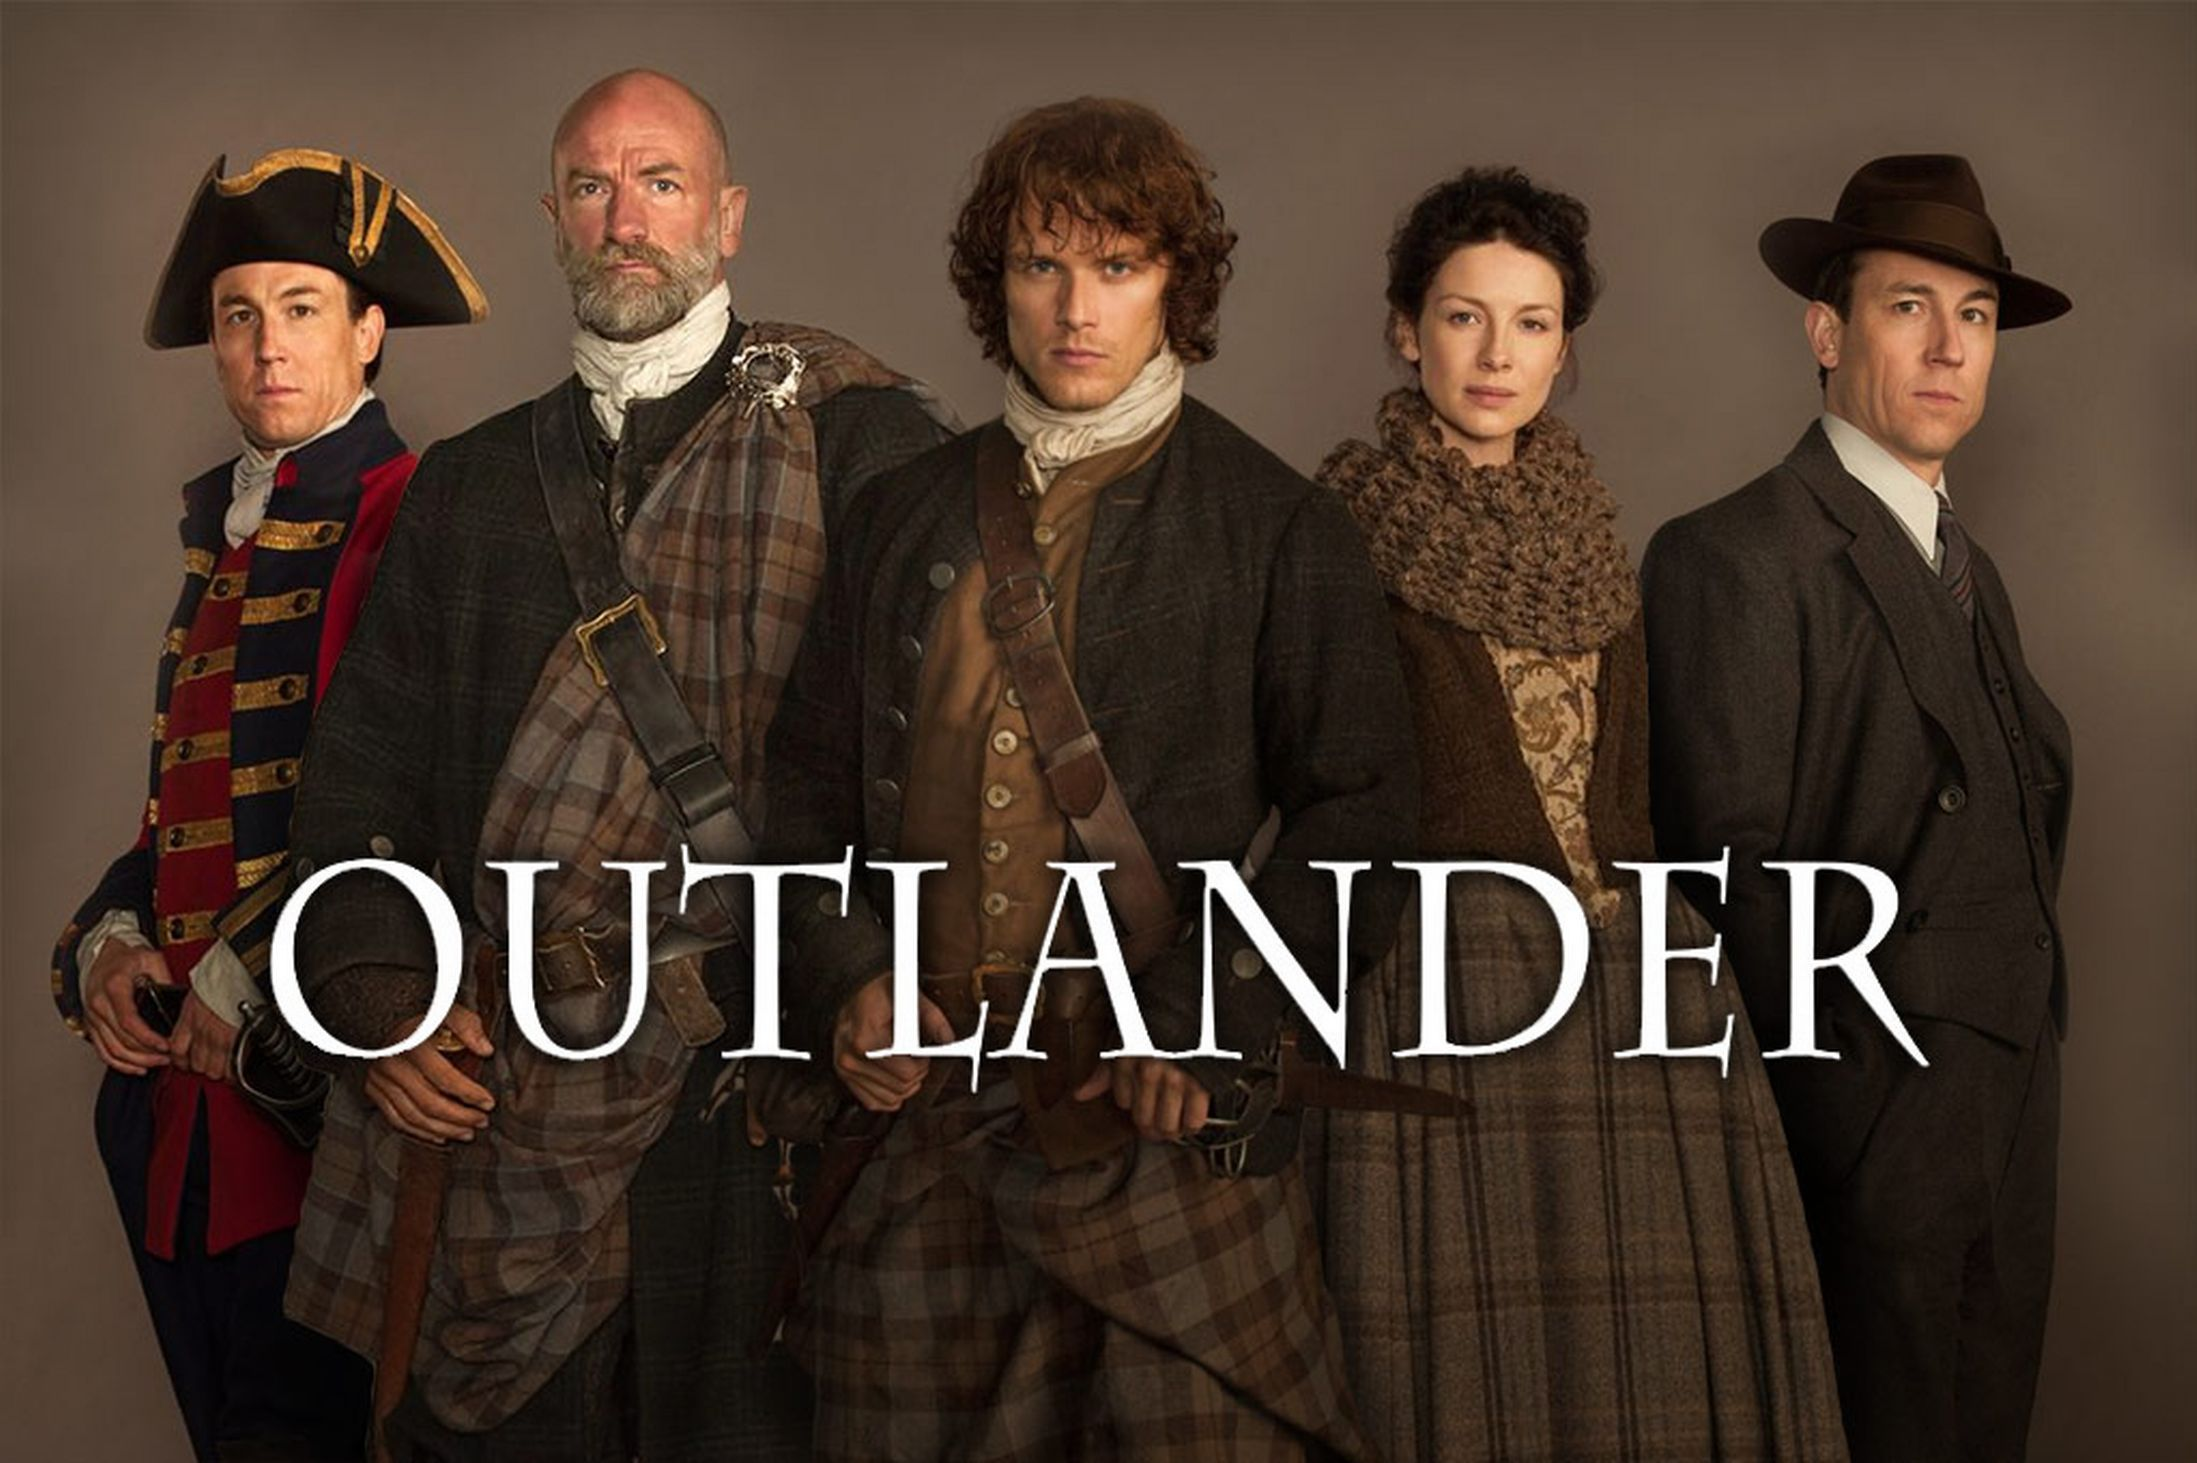 Why Do We Love Outlander So?